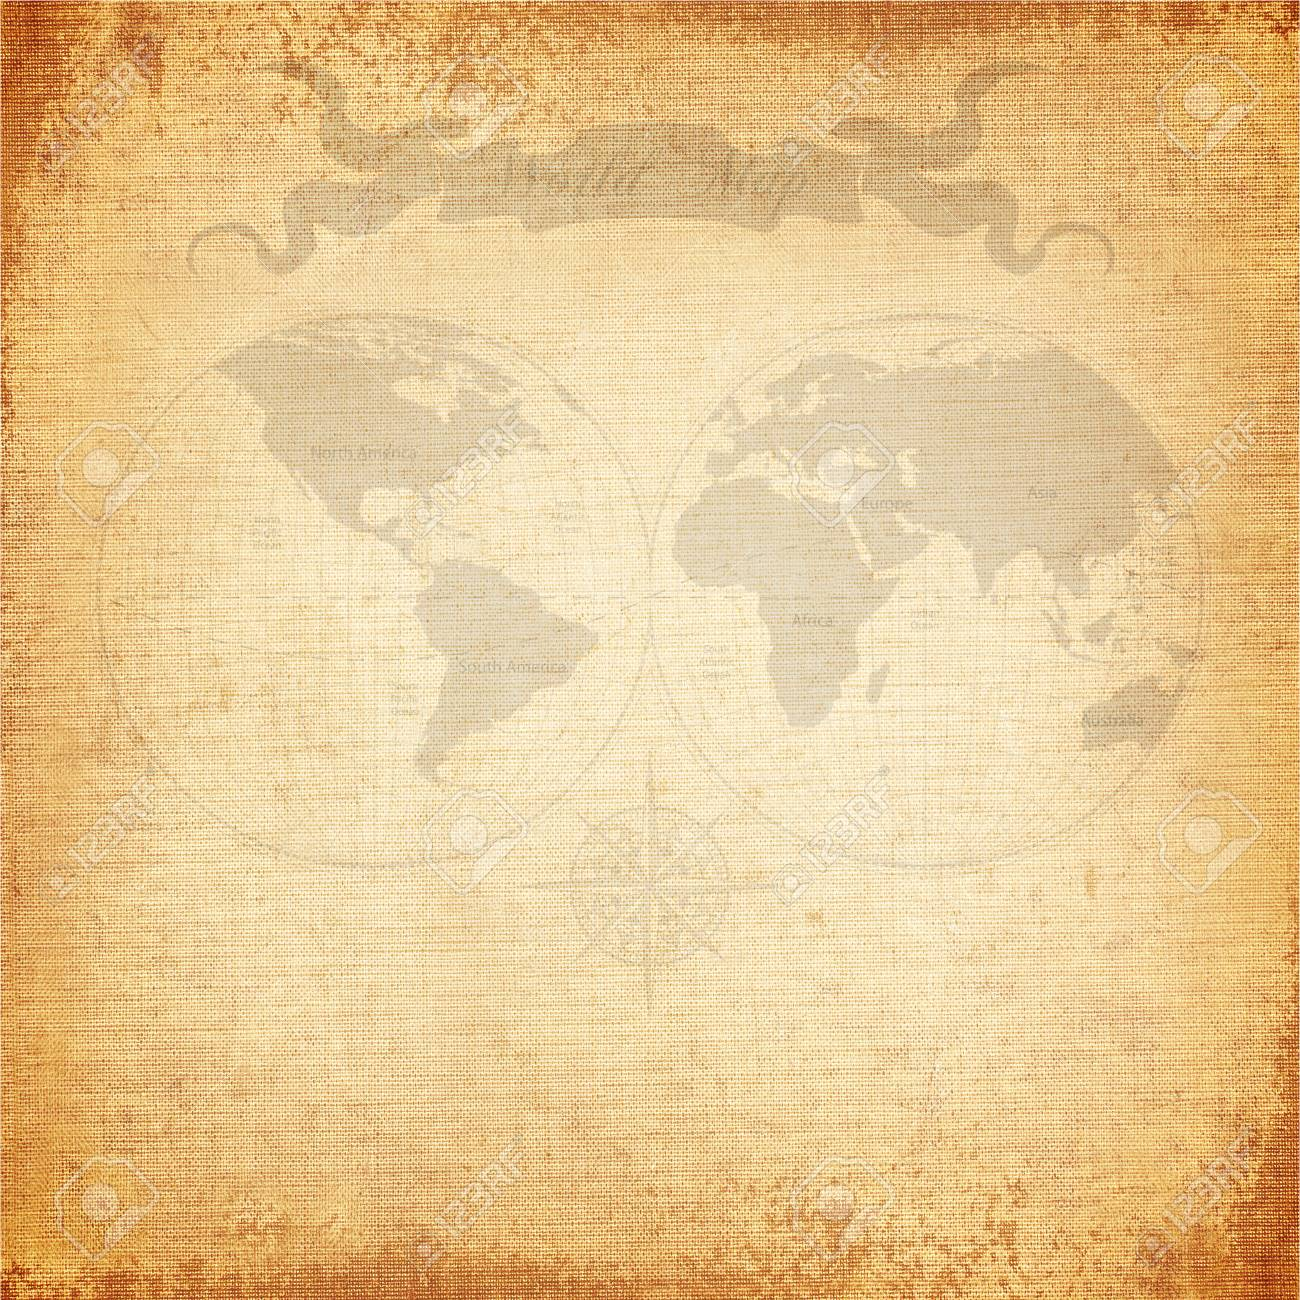 Vintage background old world map with canvas texture stock photo stock photo vintage background old world map with canvas texture gumiabroncs Gallery